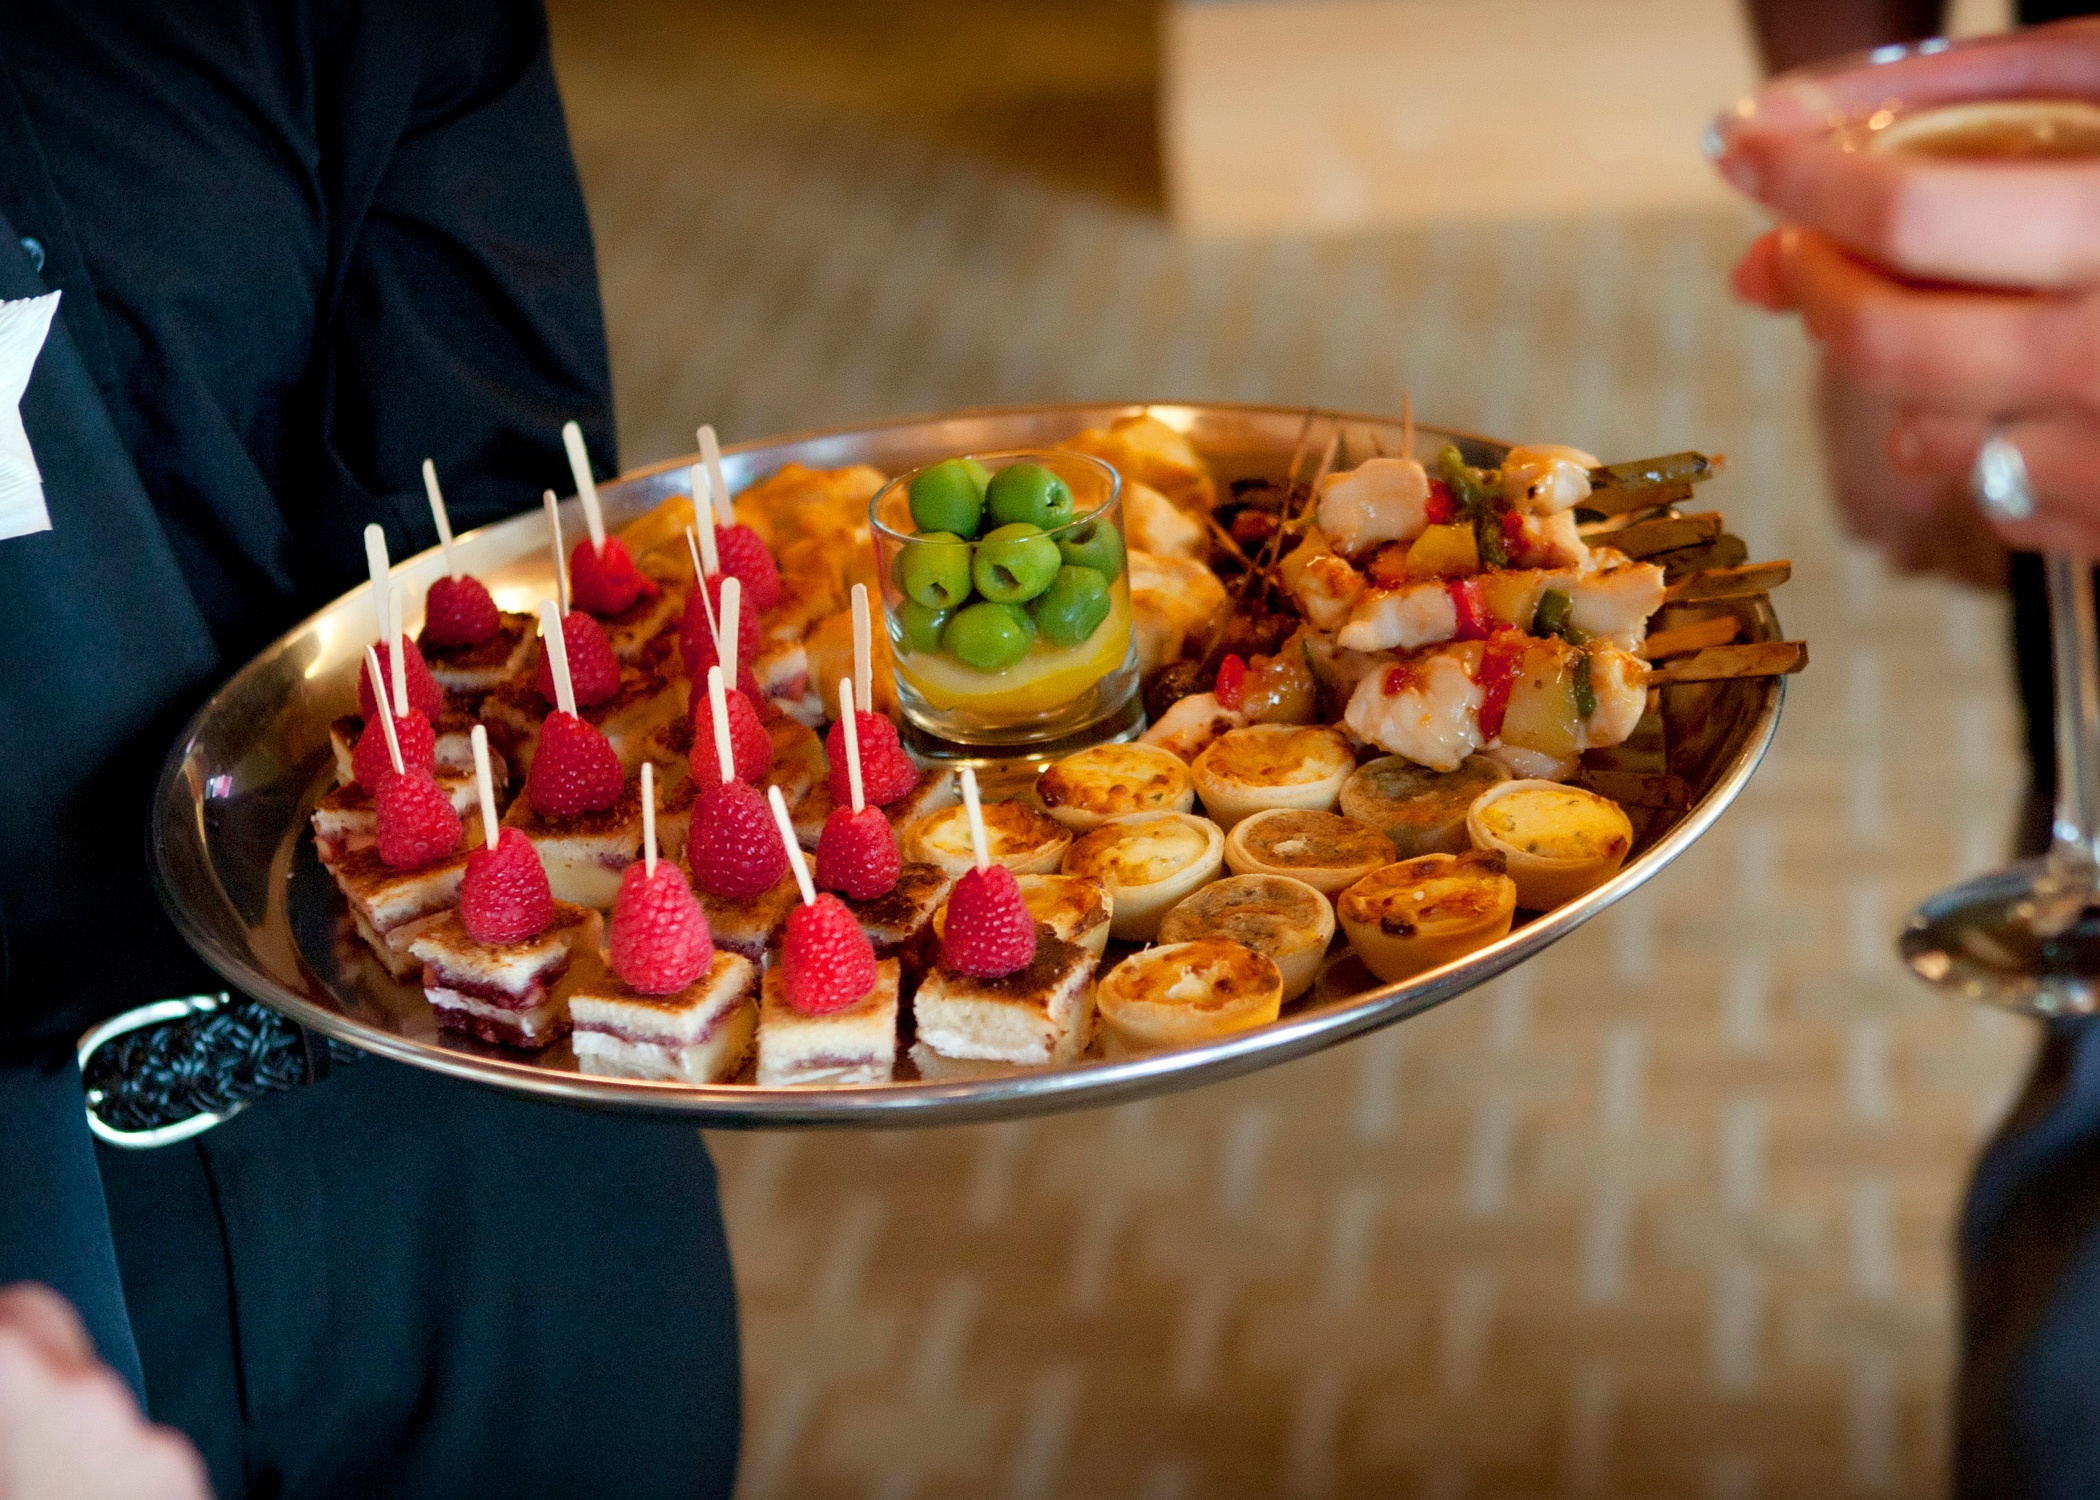 Golfers enjoy a variety of appetizers after a networking event at Hazeltine National Golf Club